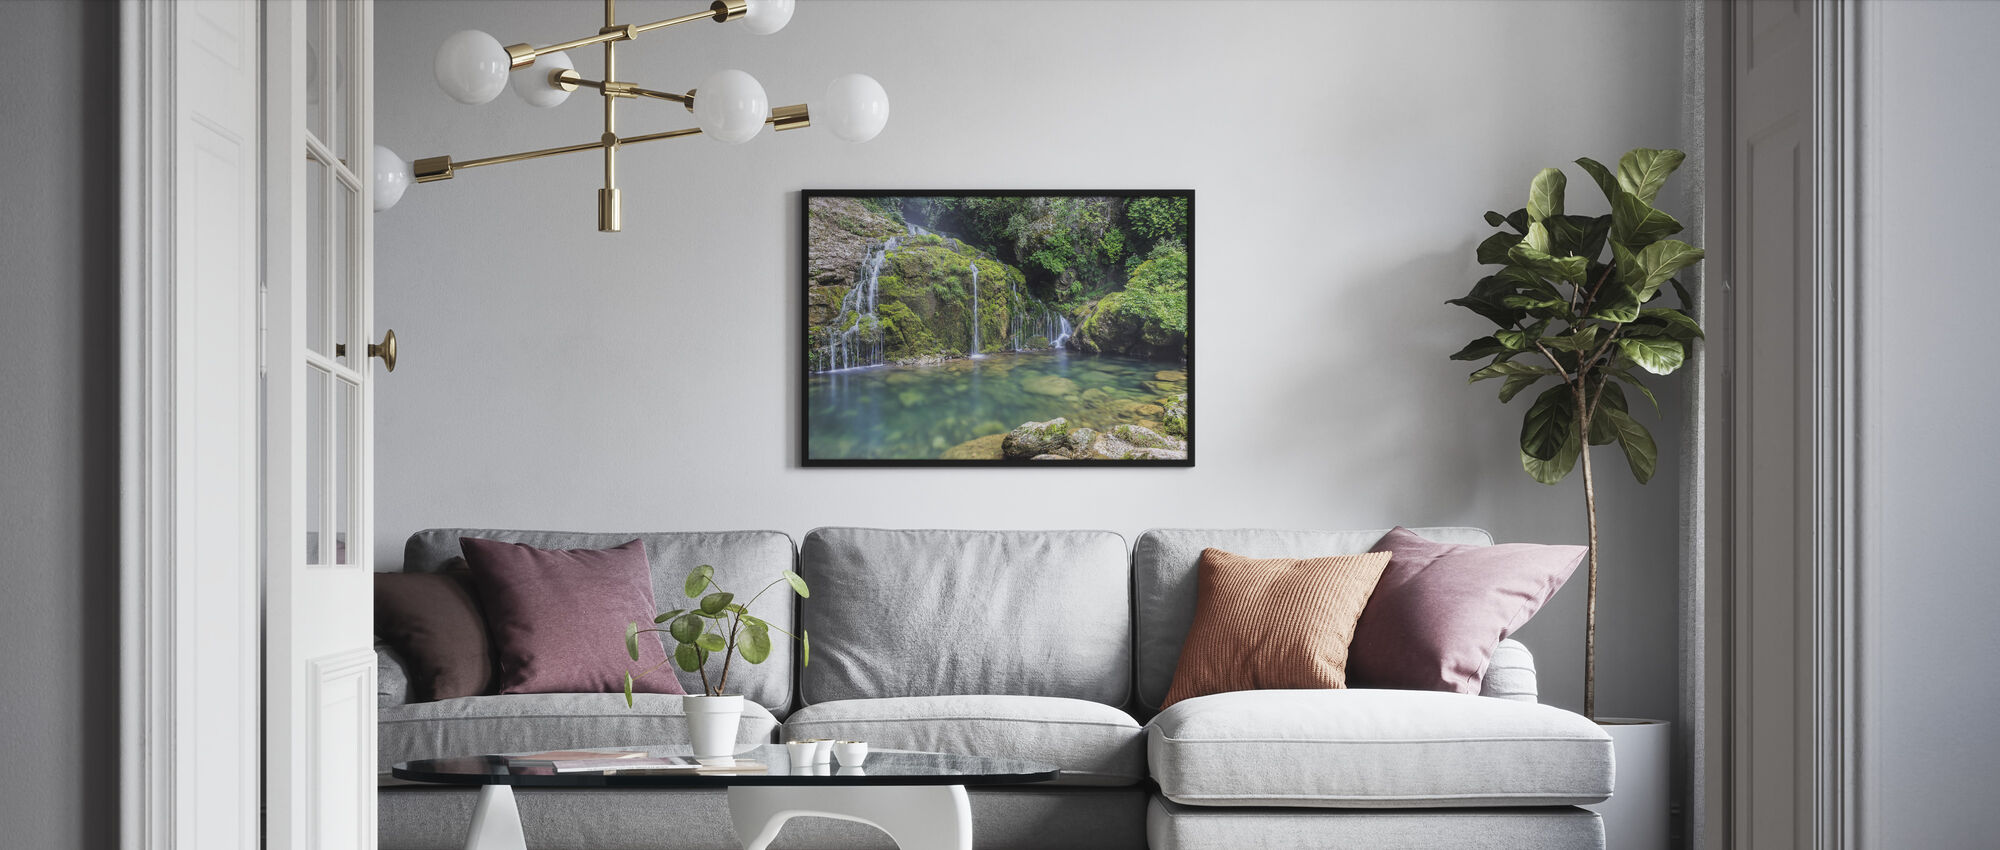 Water from the Mountain - Framed print - Living Room